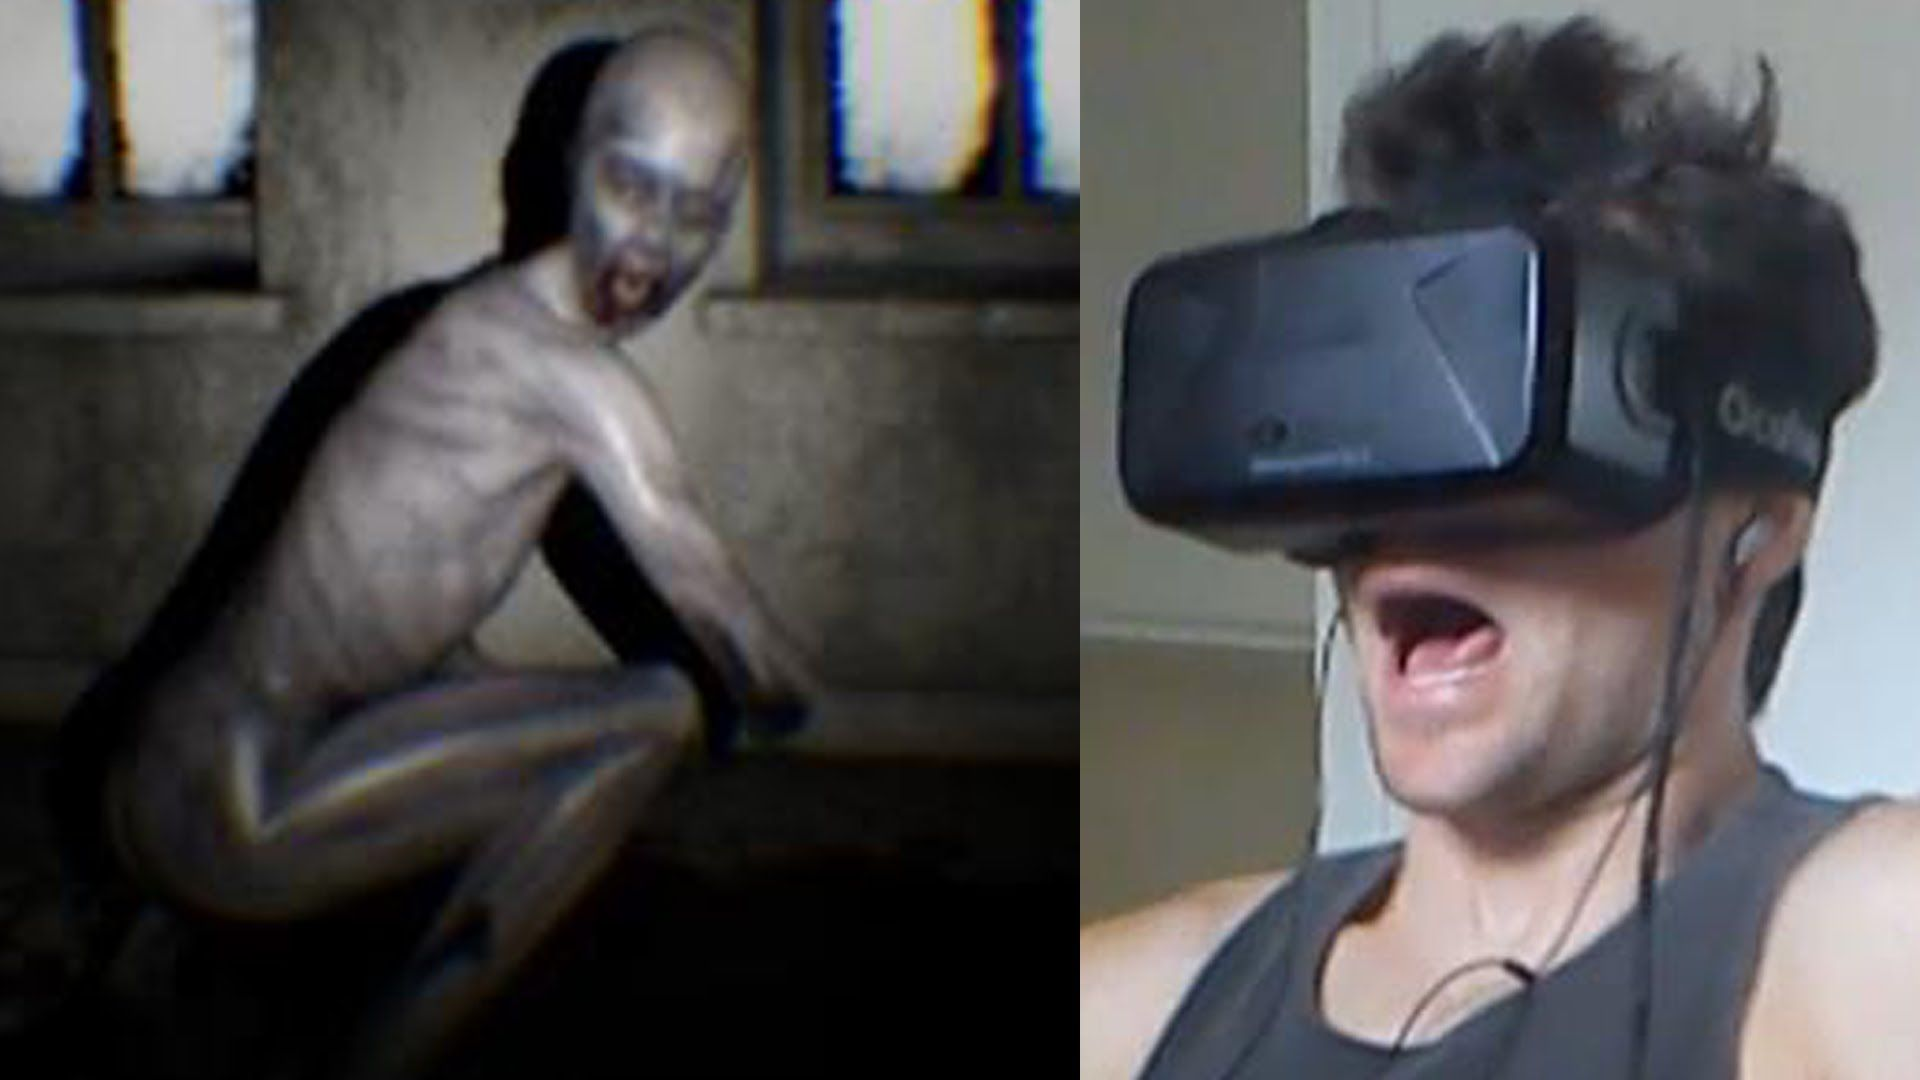 Oculus Rift Horror Gameplay